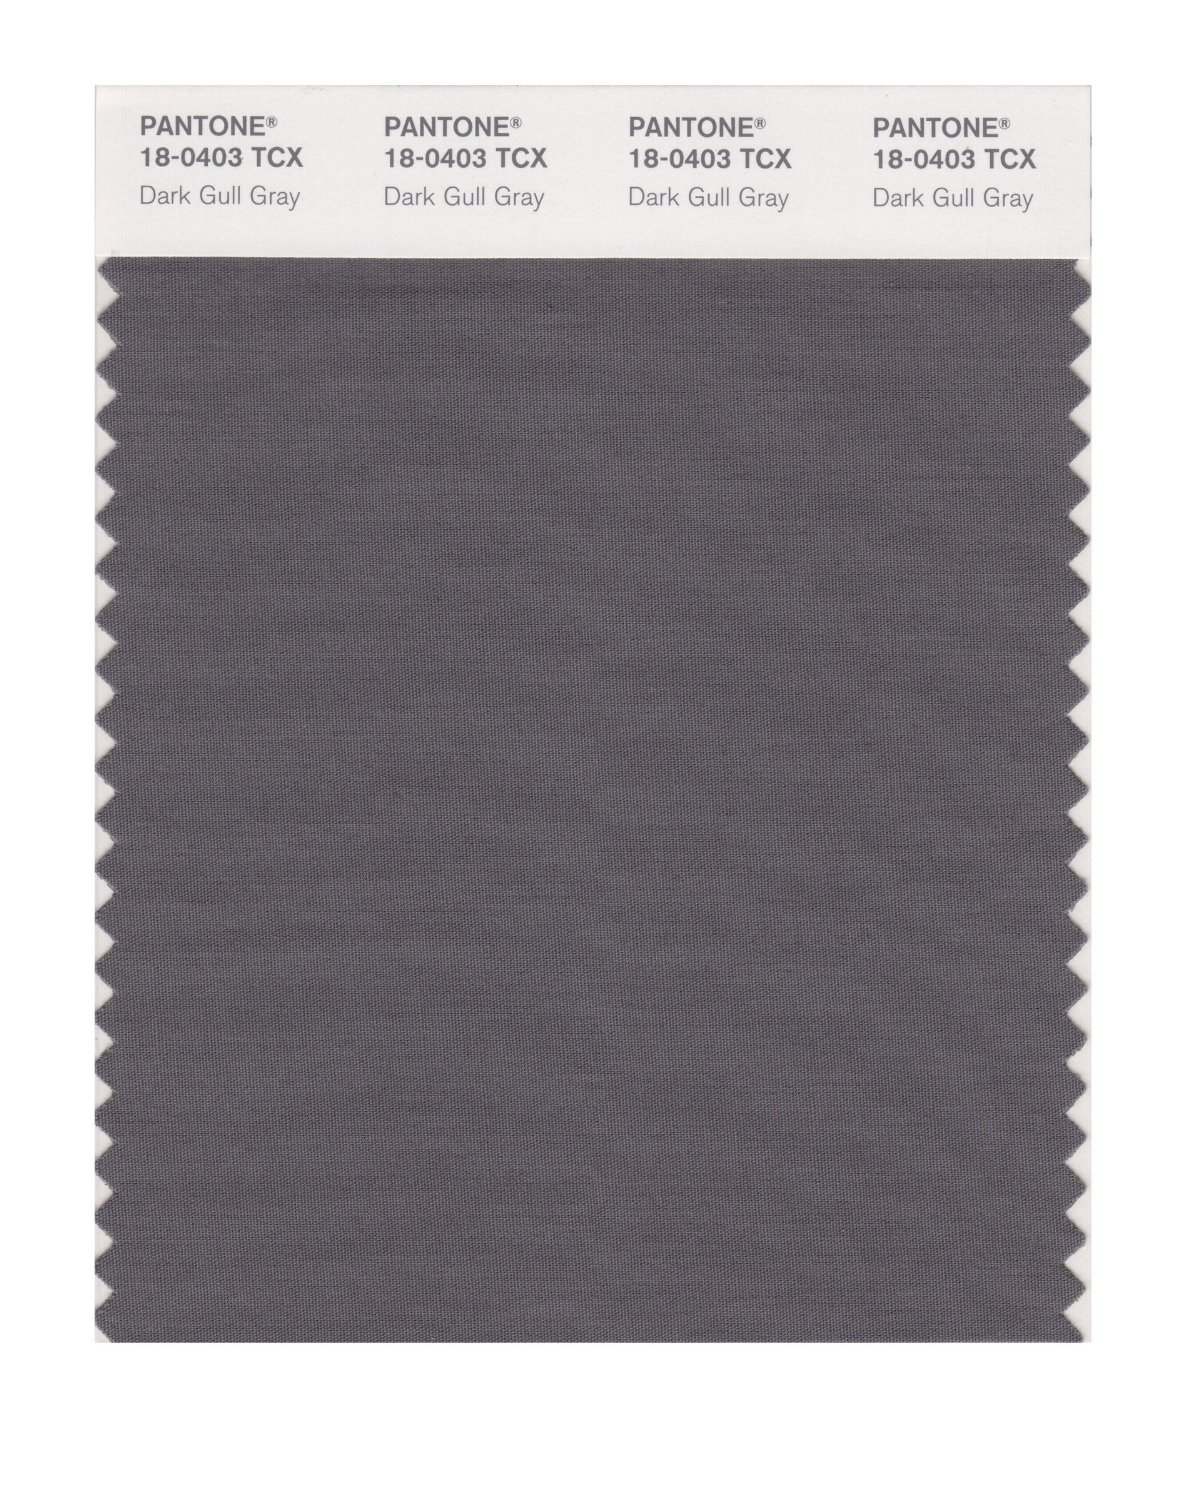 Pantone Smart Swatch 18-0403 Dark Gull Gray